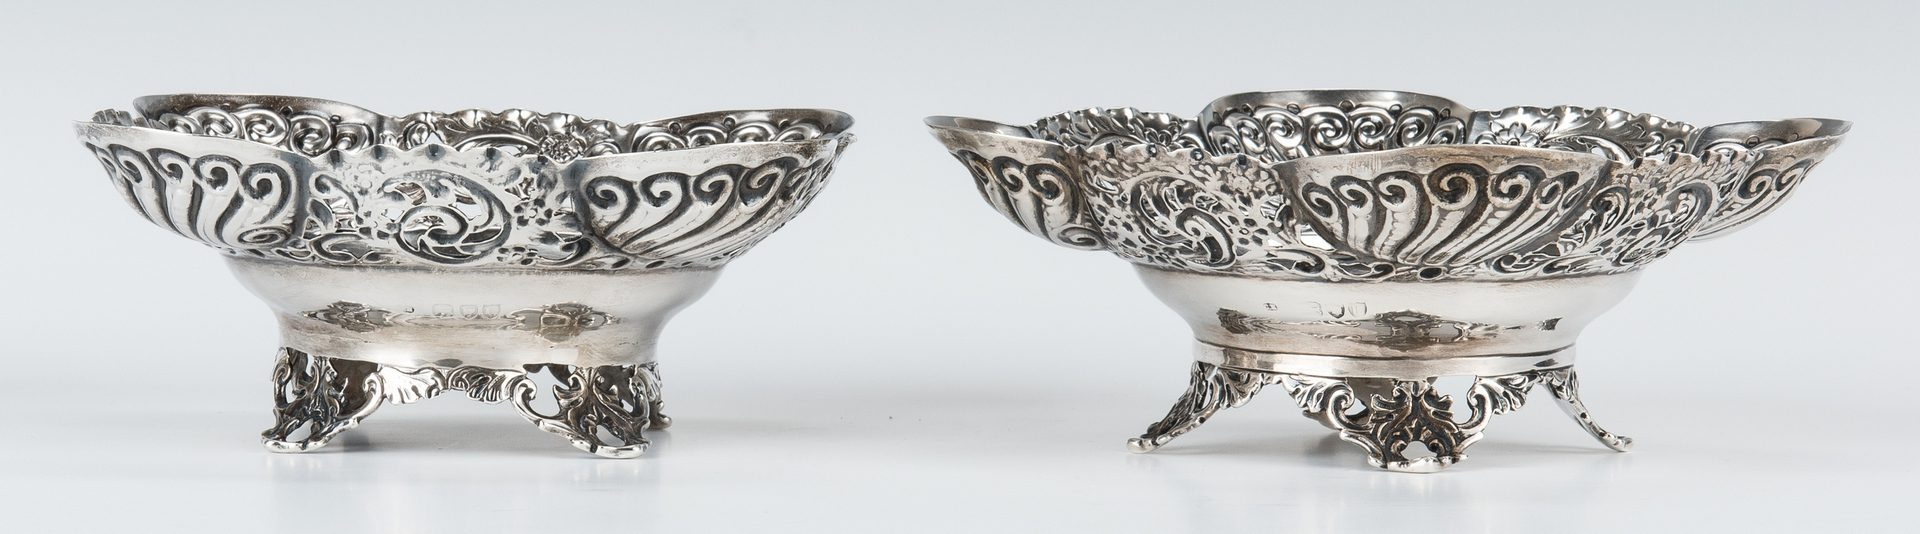 Lot 200: 3 Art Nouveau Period English Sterling Table Items